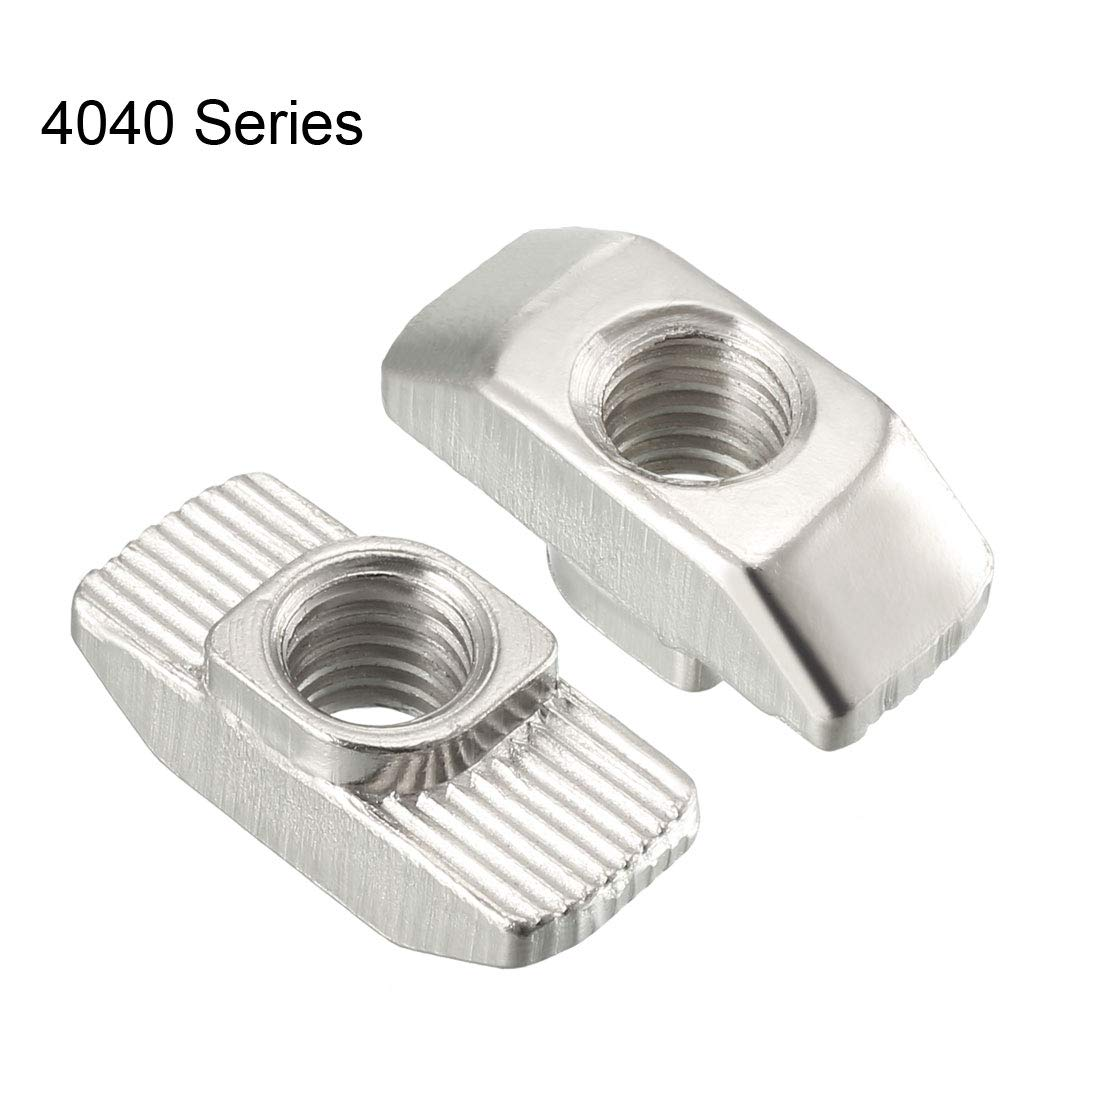 M5 Half Round Roll in T-Nut for 2020 Series Aluminum Extrusion Profile Carbon Steel Nickel-Plated Pack of 20 uxcell Sliding T Slot Nuts